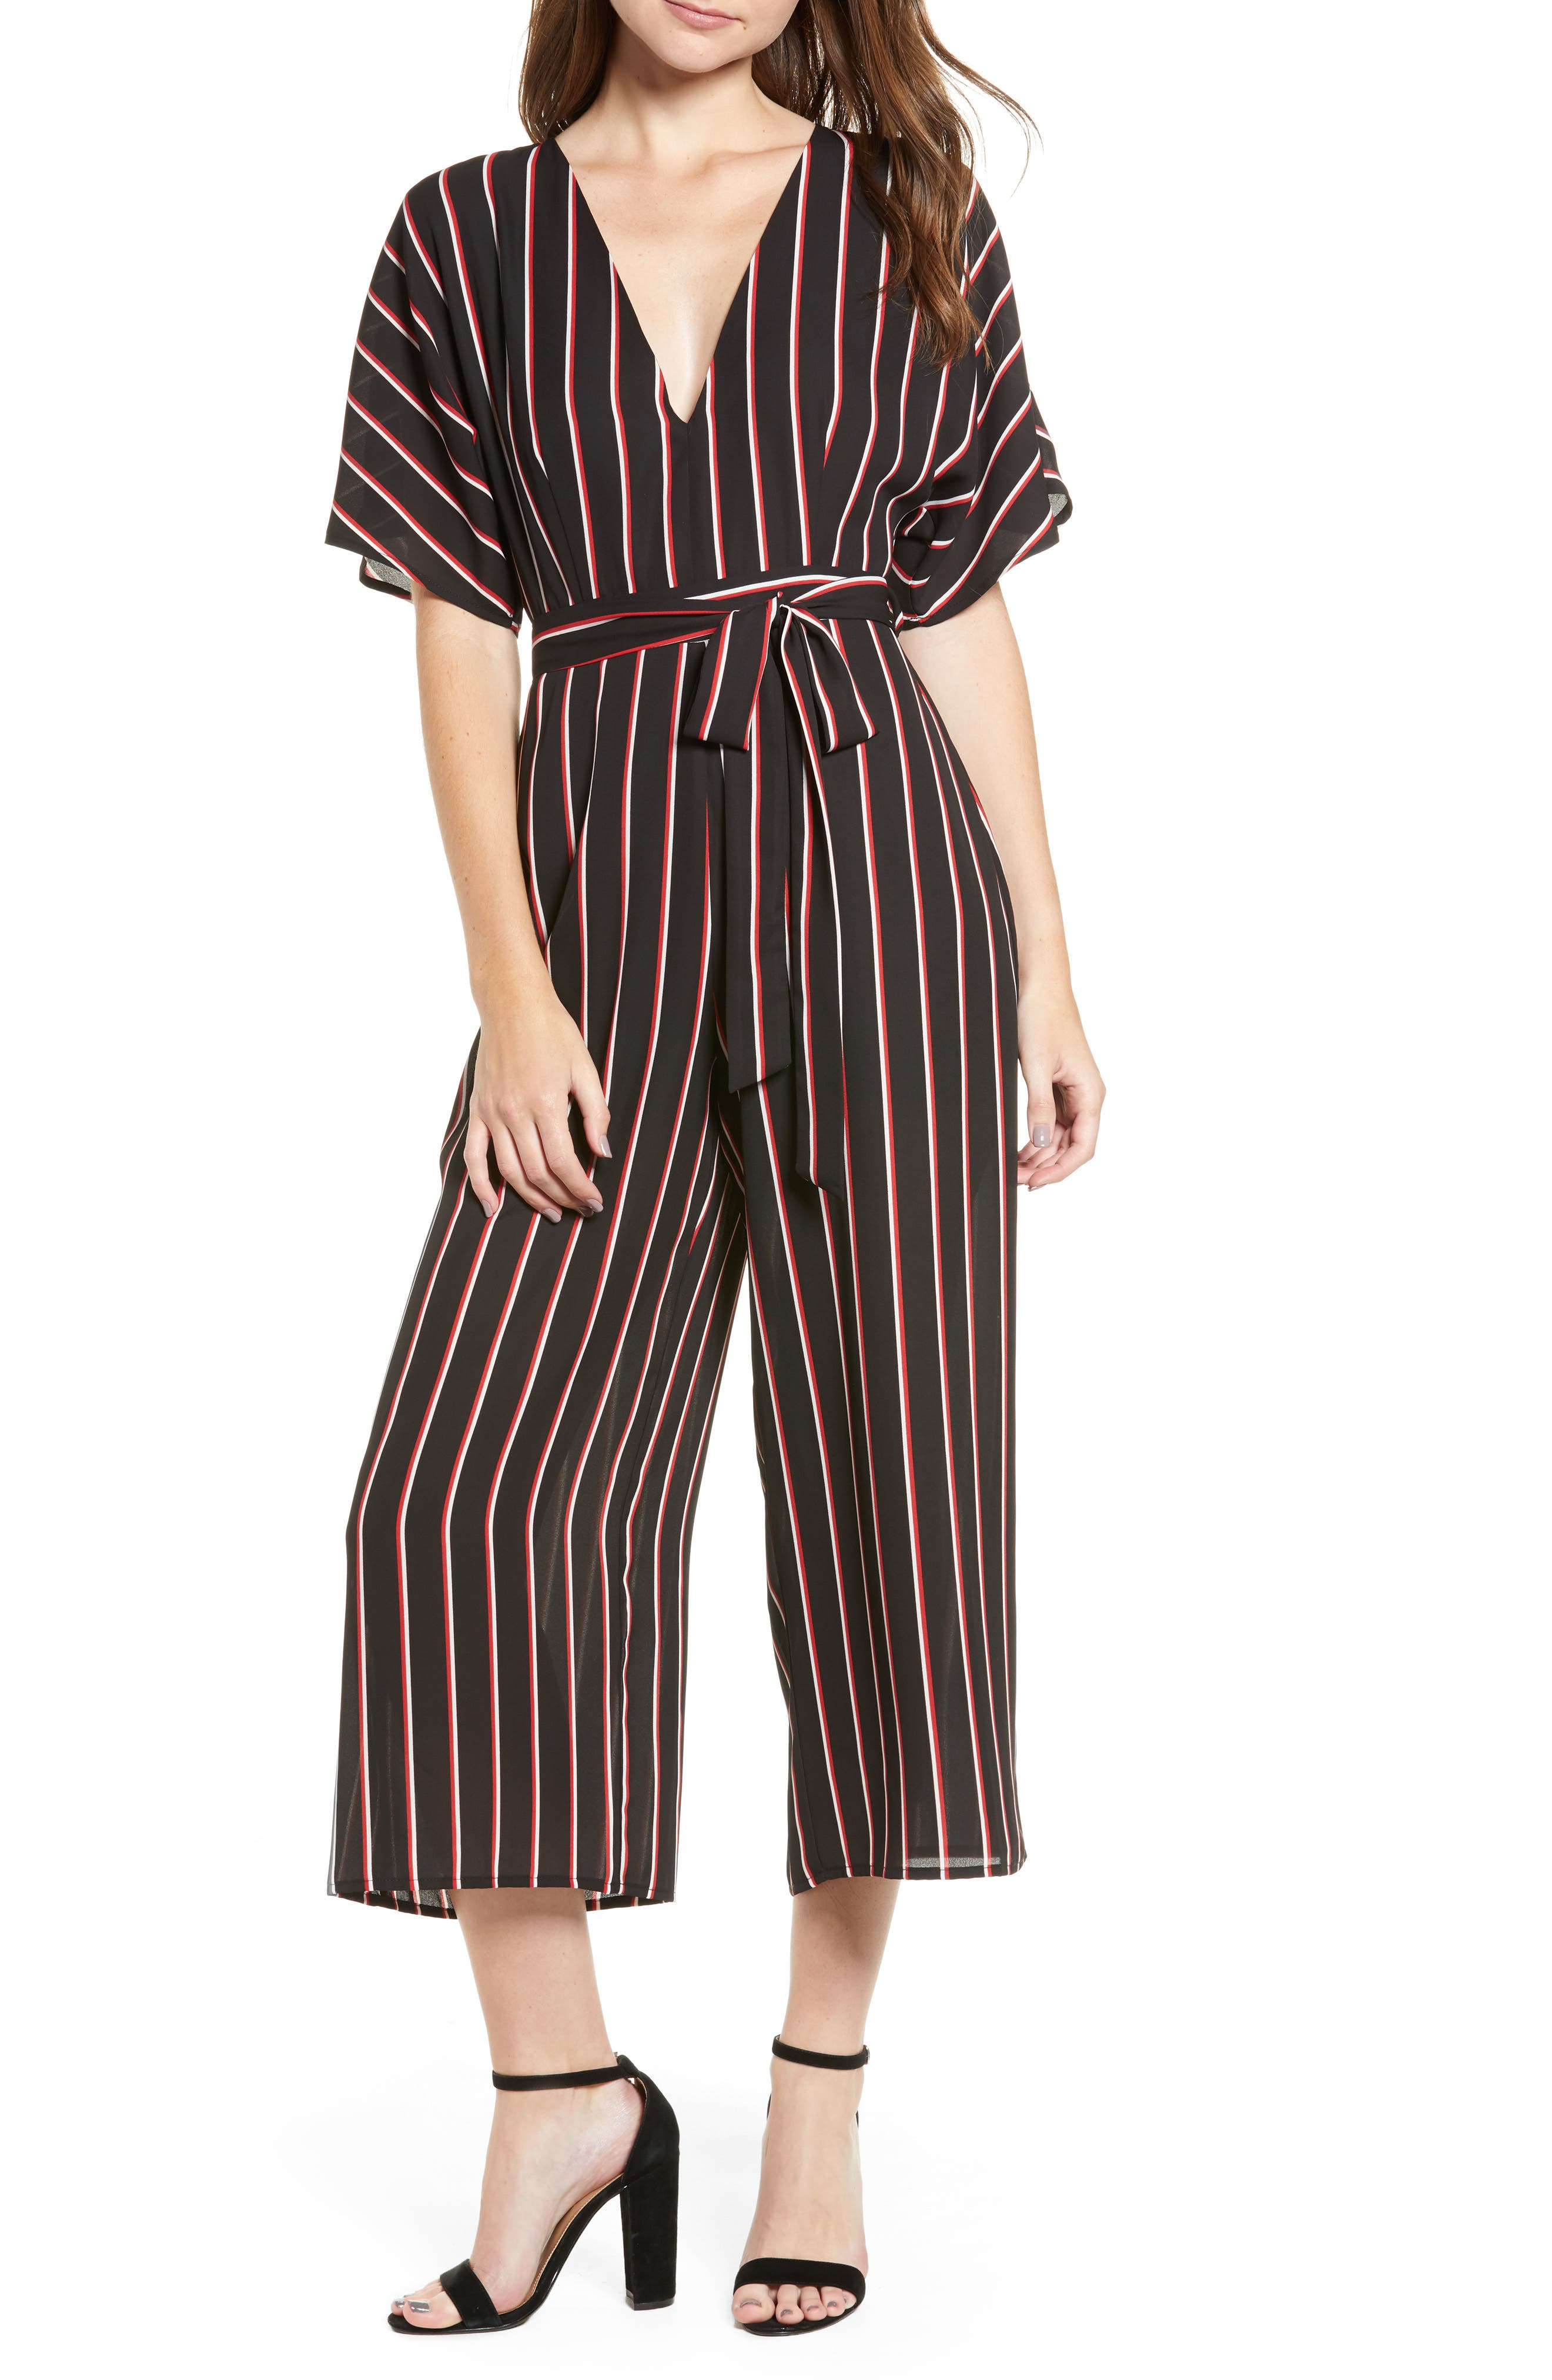 54844d65adb5 Women s Rompers   Jumpsuits Fashion Trends  Clothing